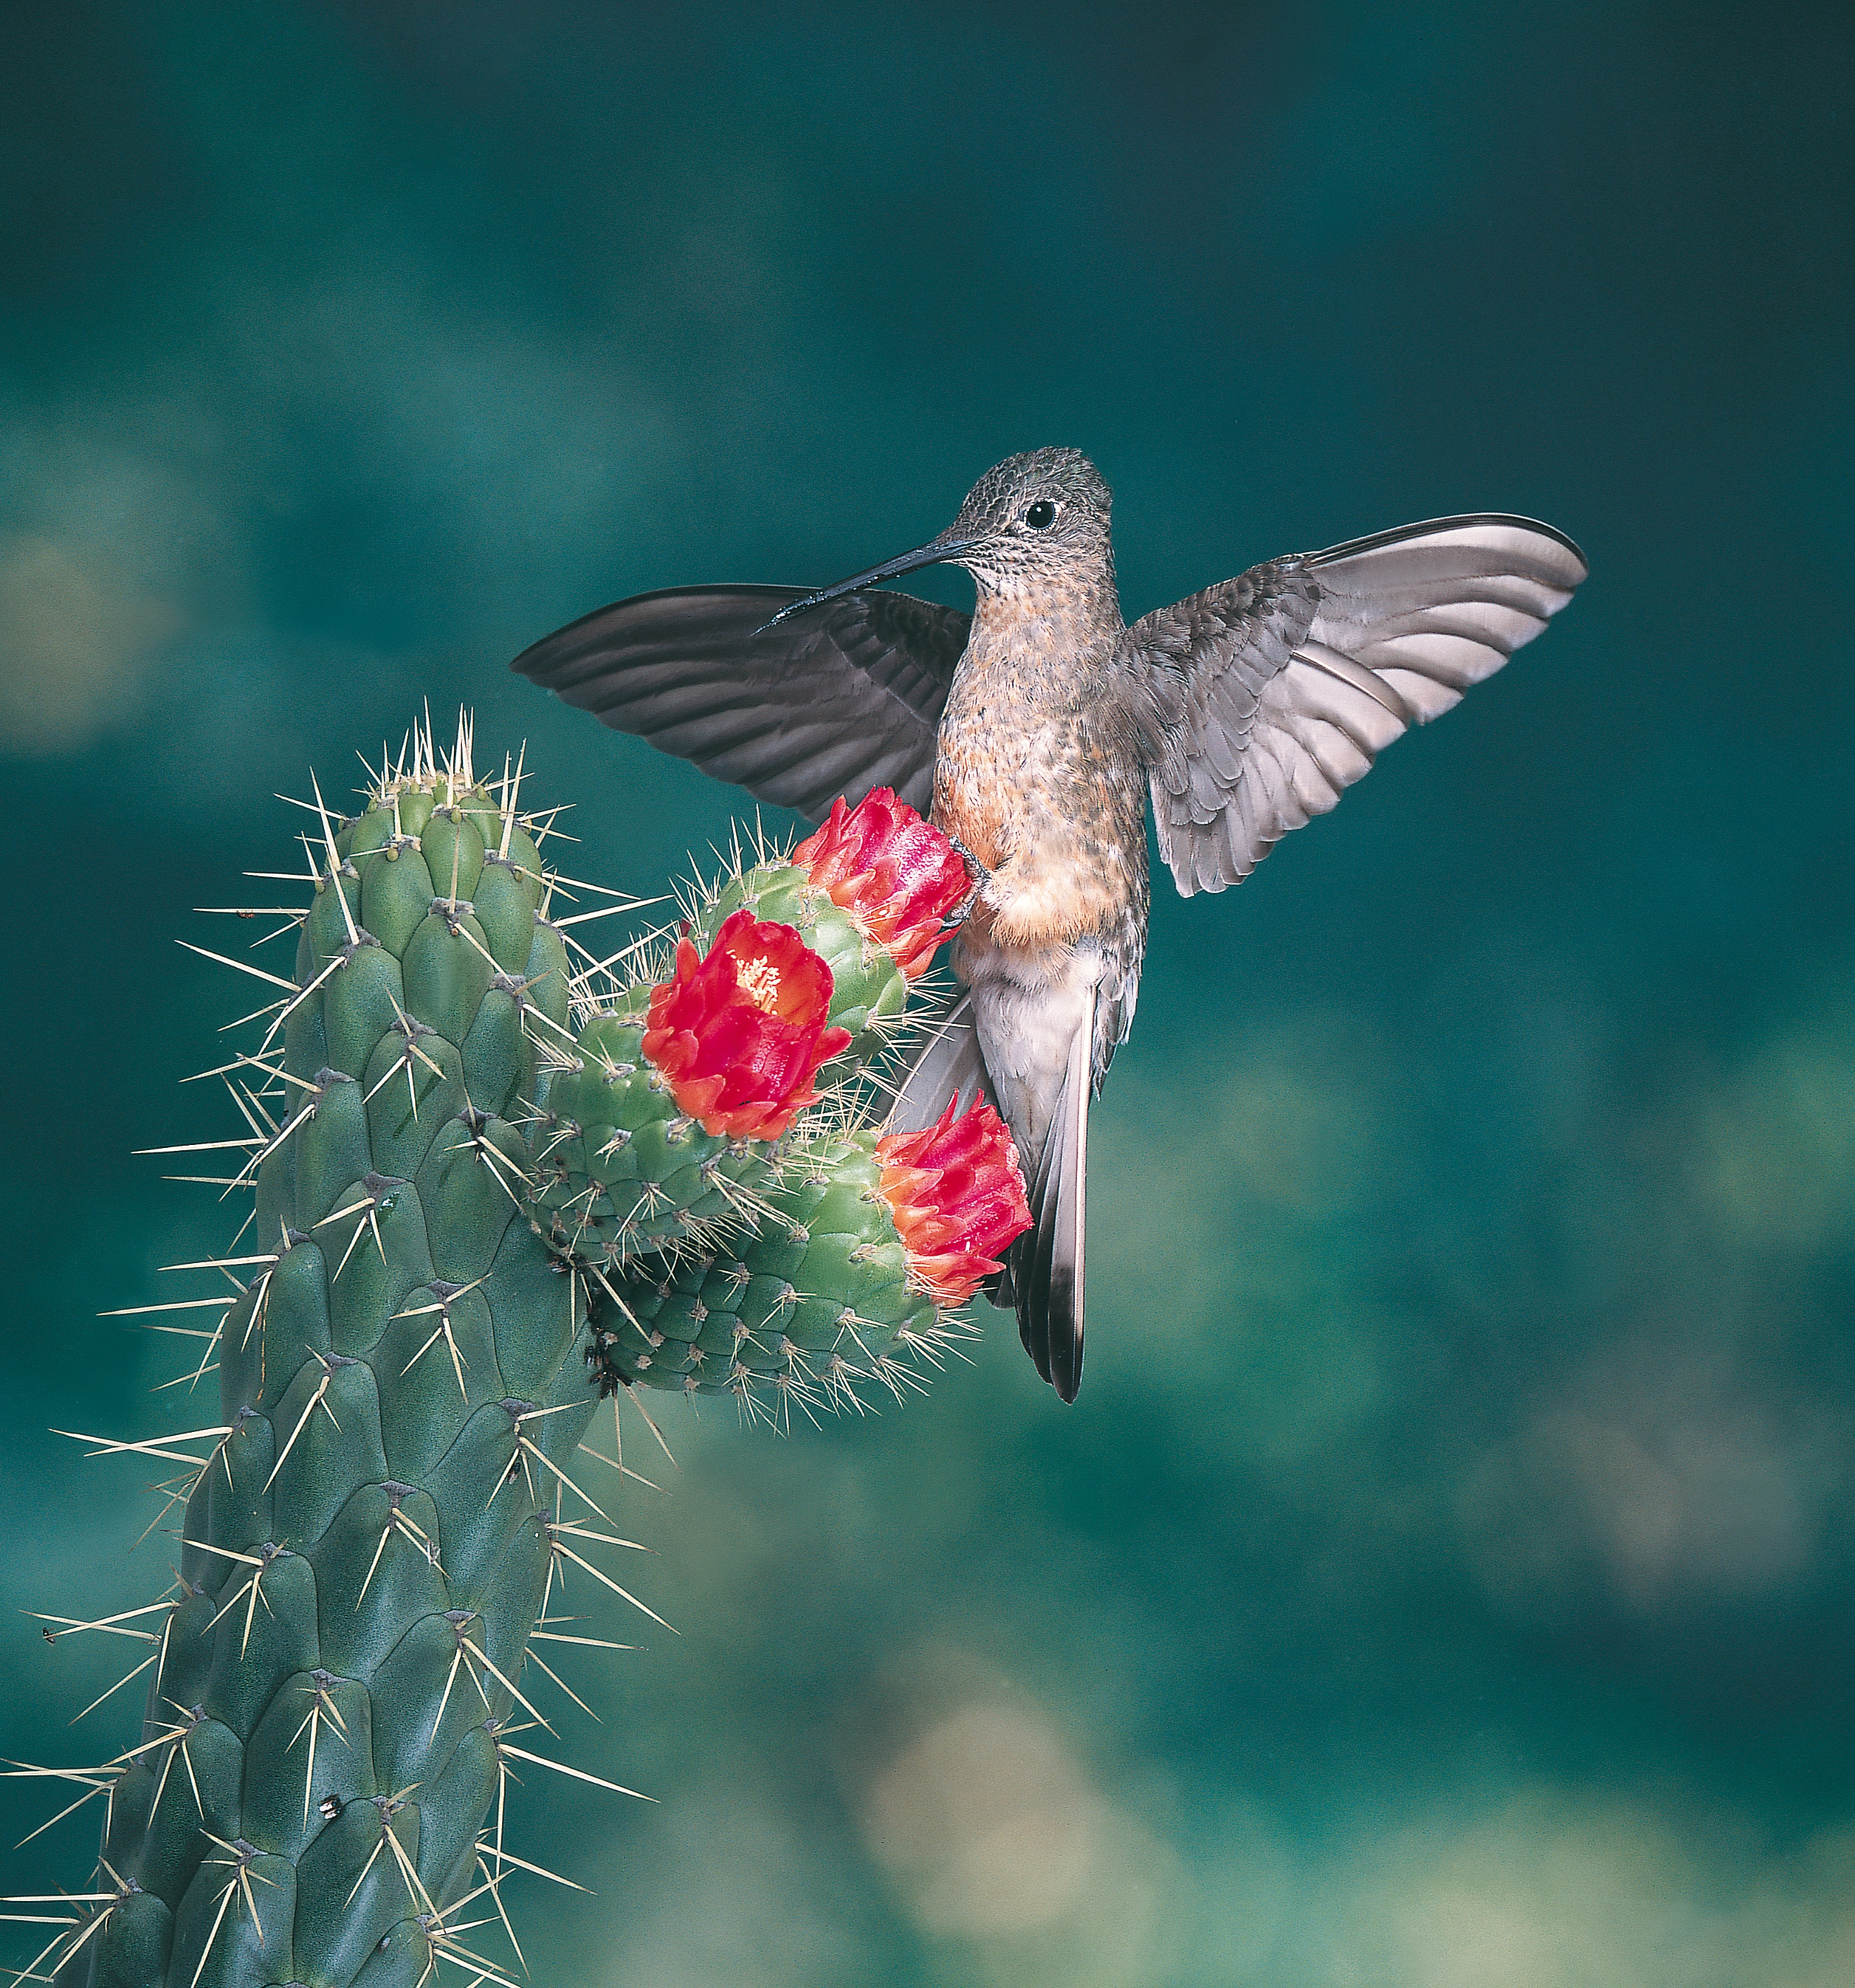 25 Crazy Facts About Hummingbirds - The Spruce